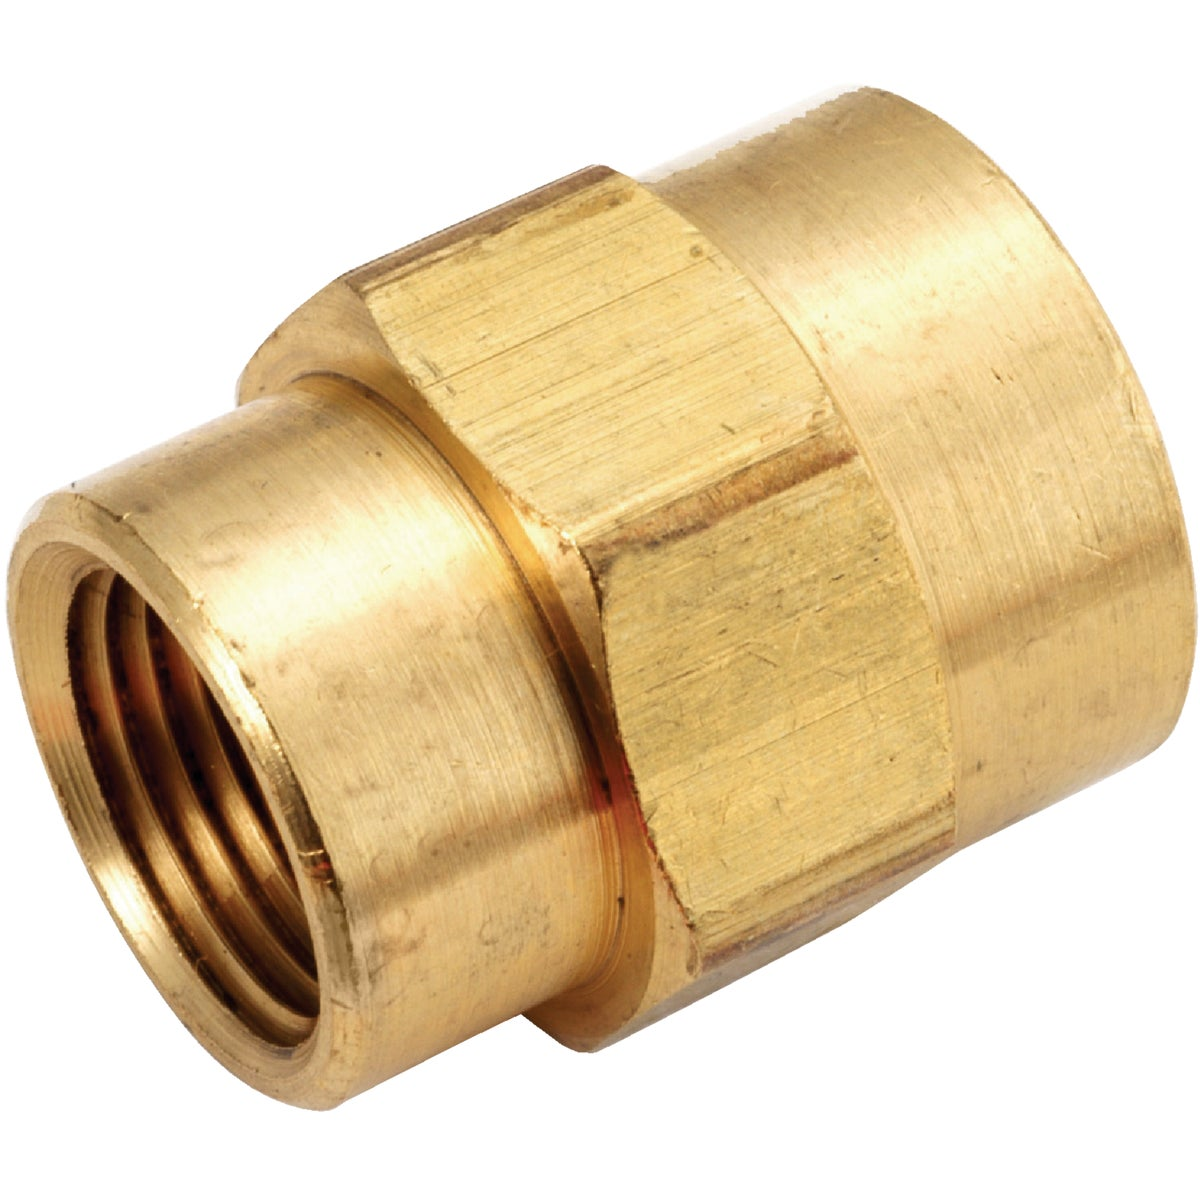 1/2X1/8 BRASS REDUC CPLN - 756119-0802 by Anderson Metals Corp